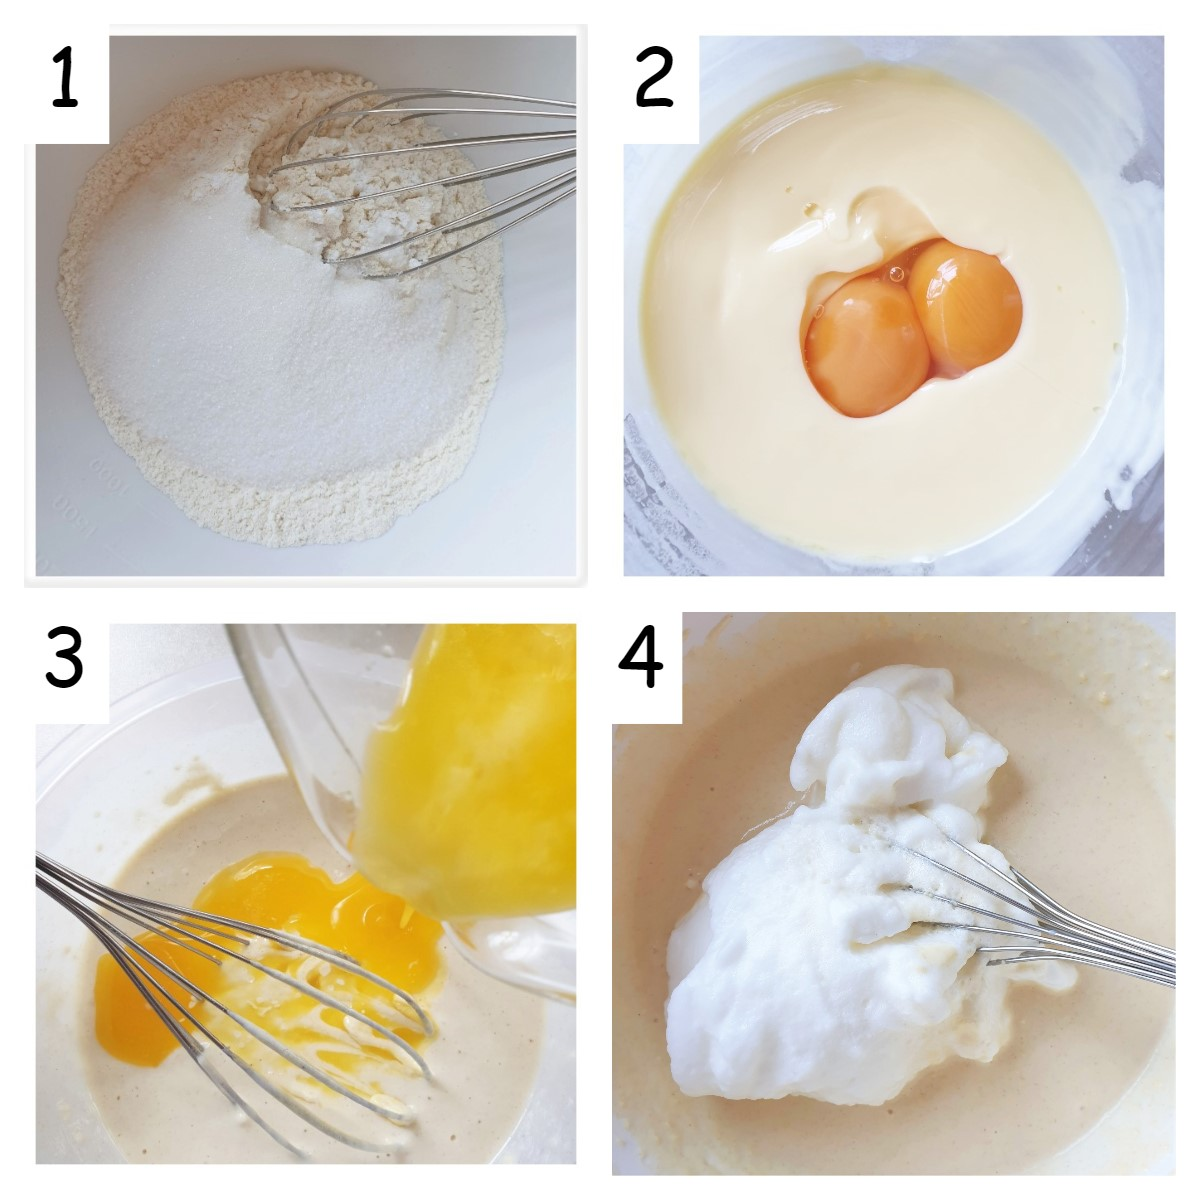 Collage of 4 images showing how to mix waffles.